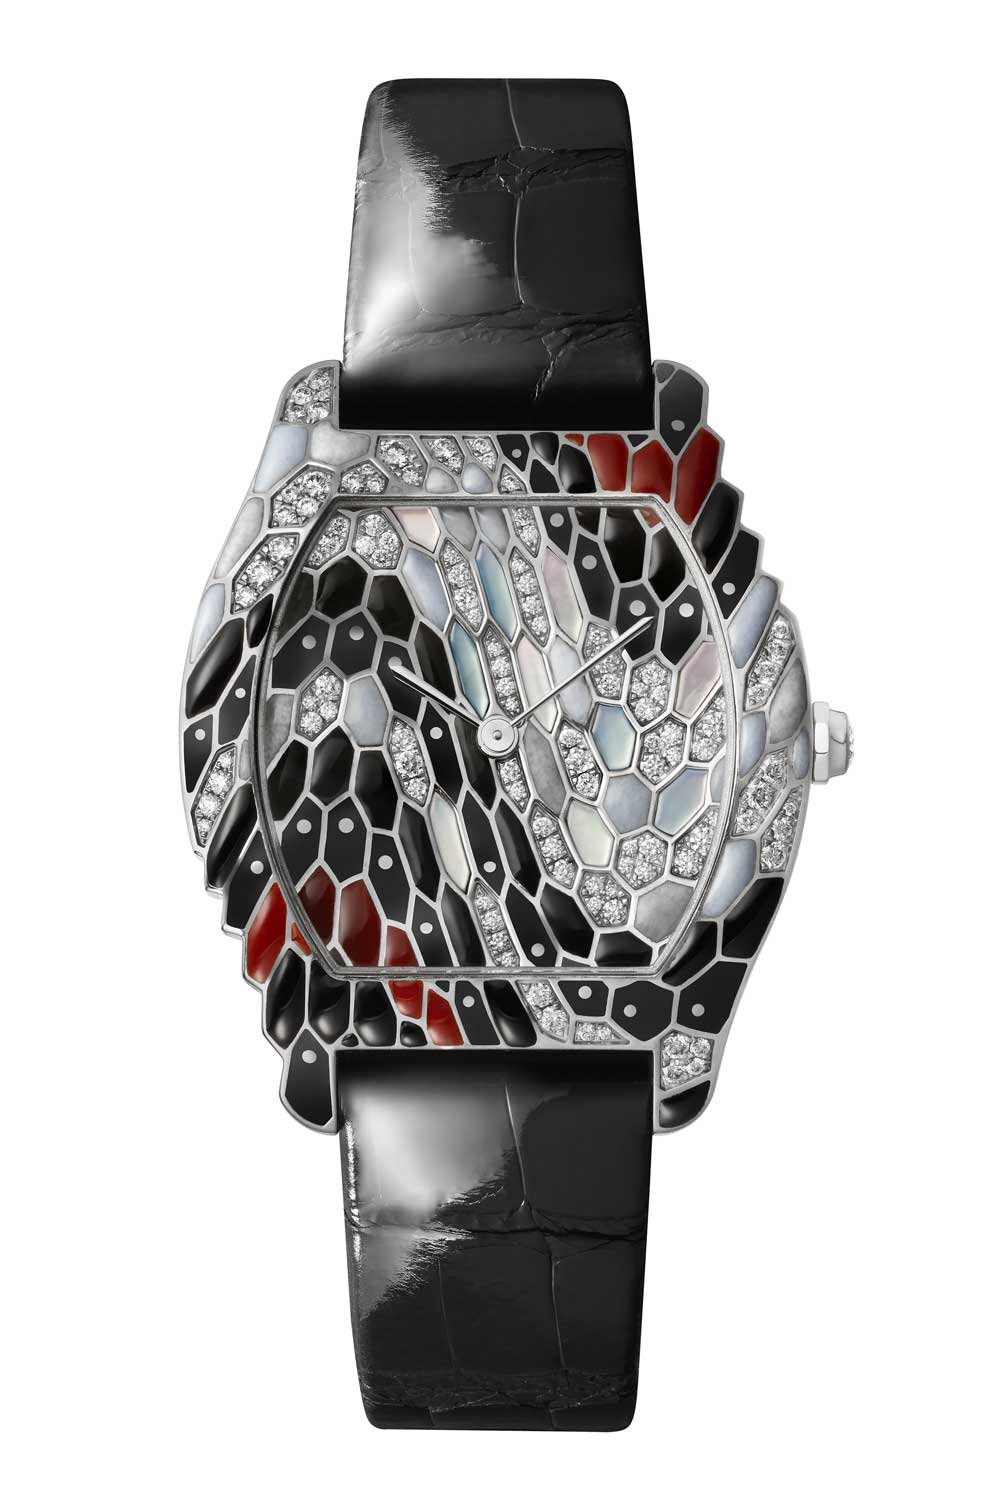 The Tortue watch gets a snake decoration this year with black and coral-colored enamel, mother of pearl, drops of polished gold and closed-set diamonds.